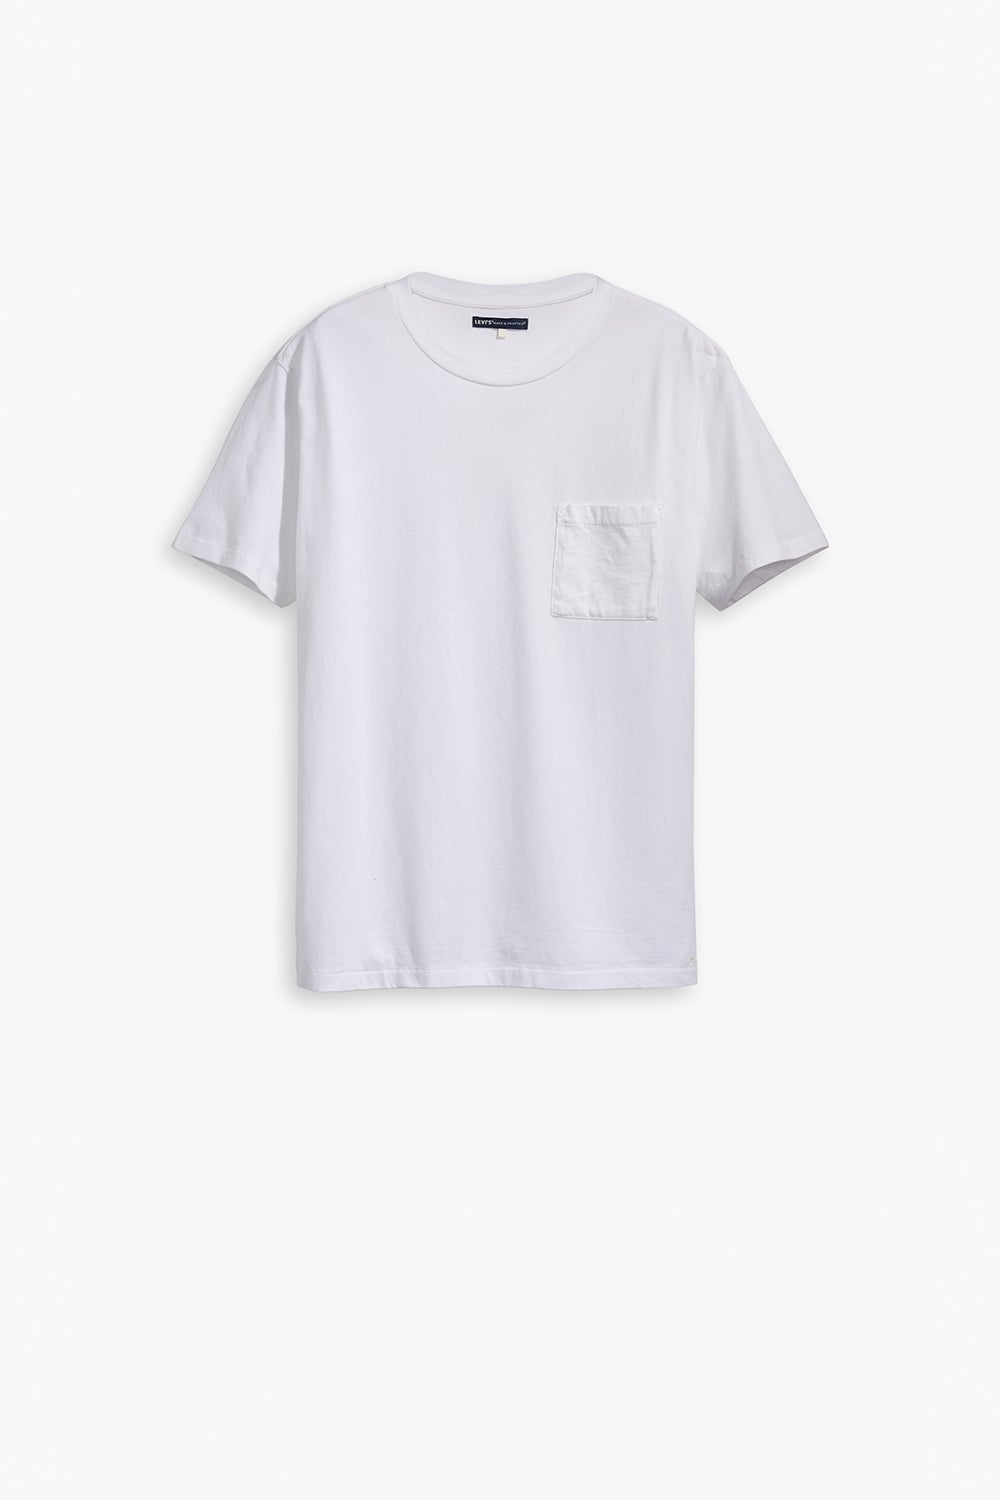 Levi's Made and Crafted Pocket Tee Bright White